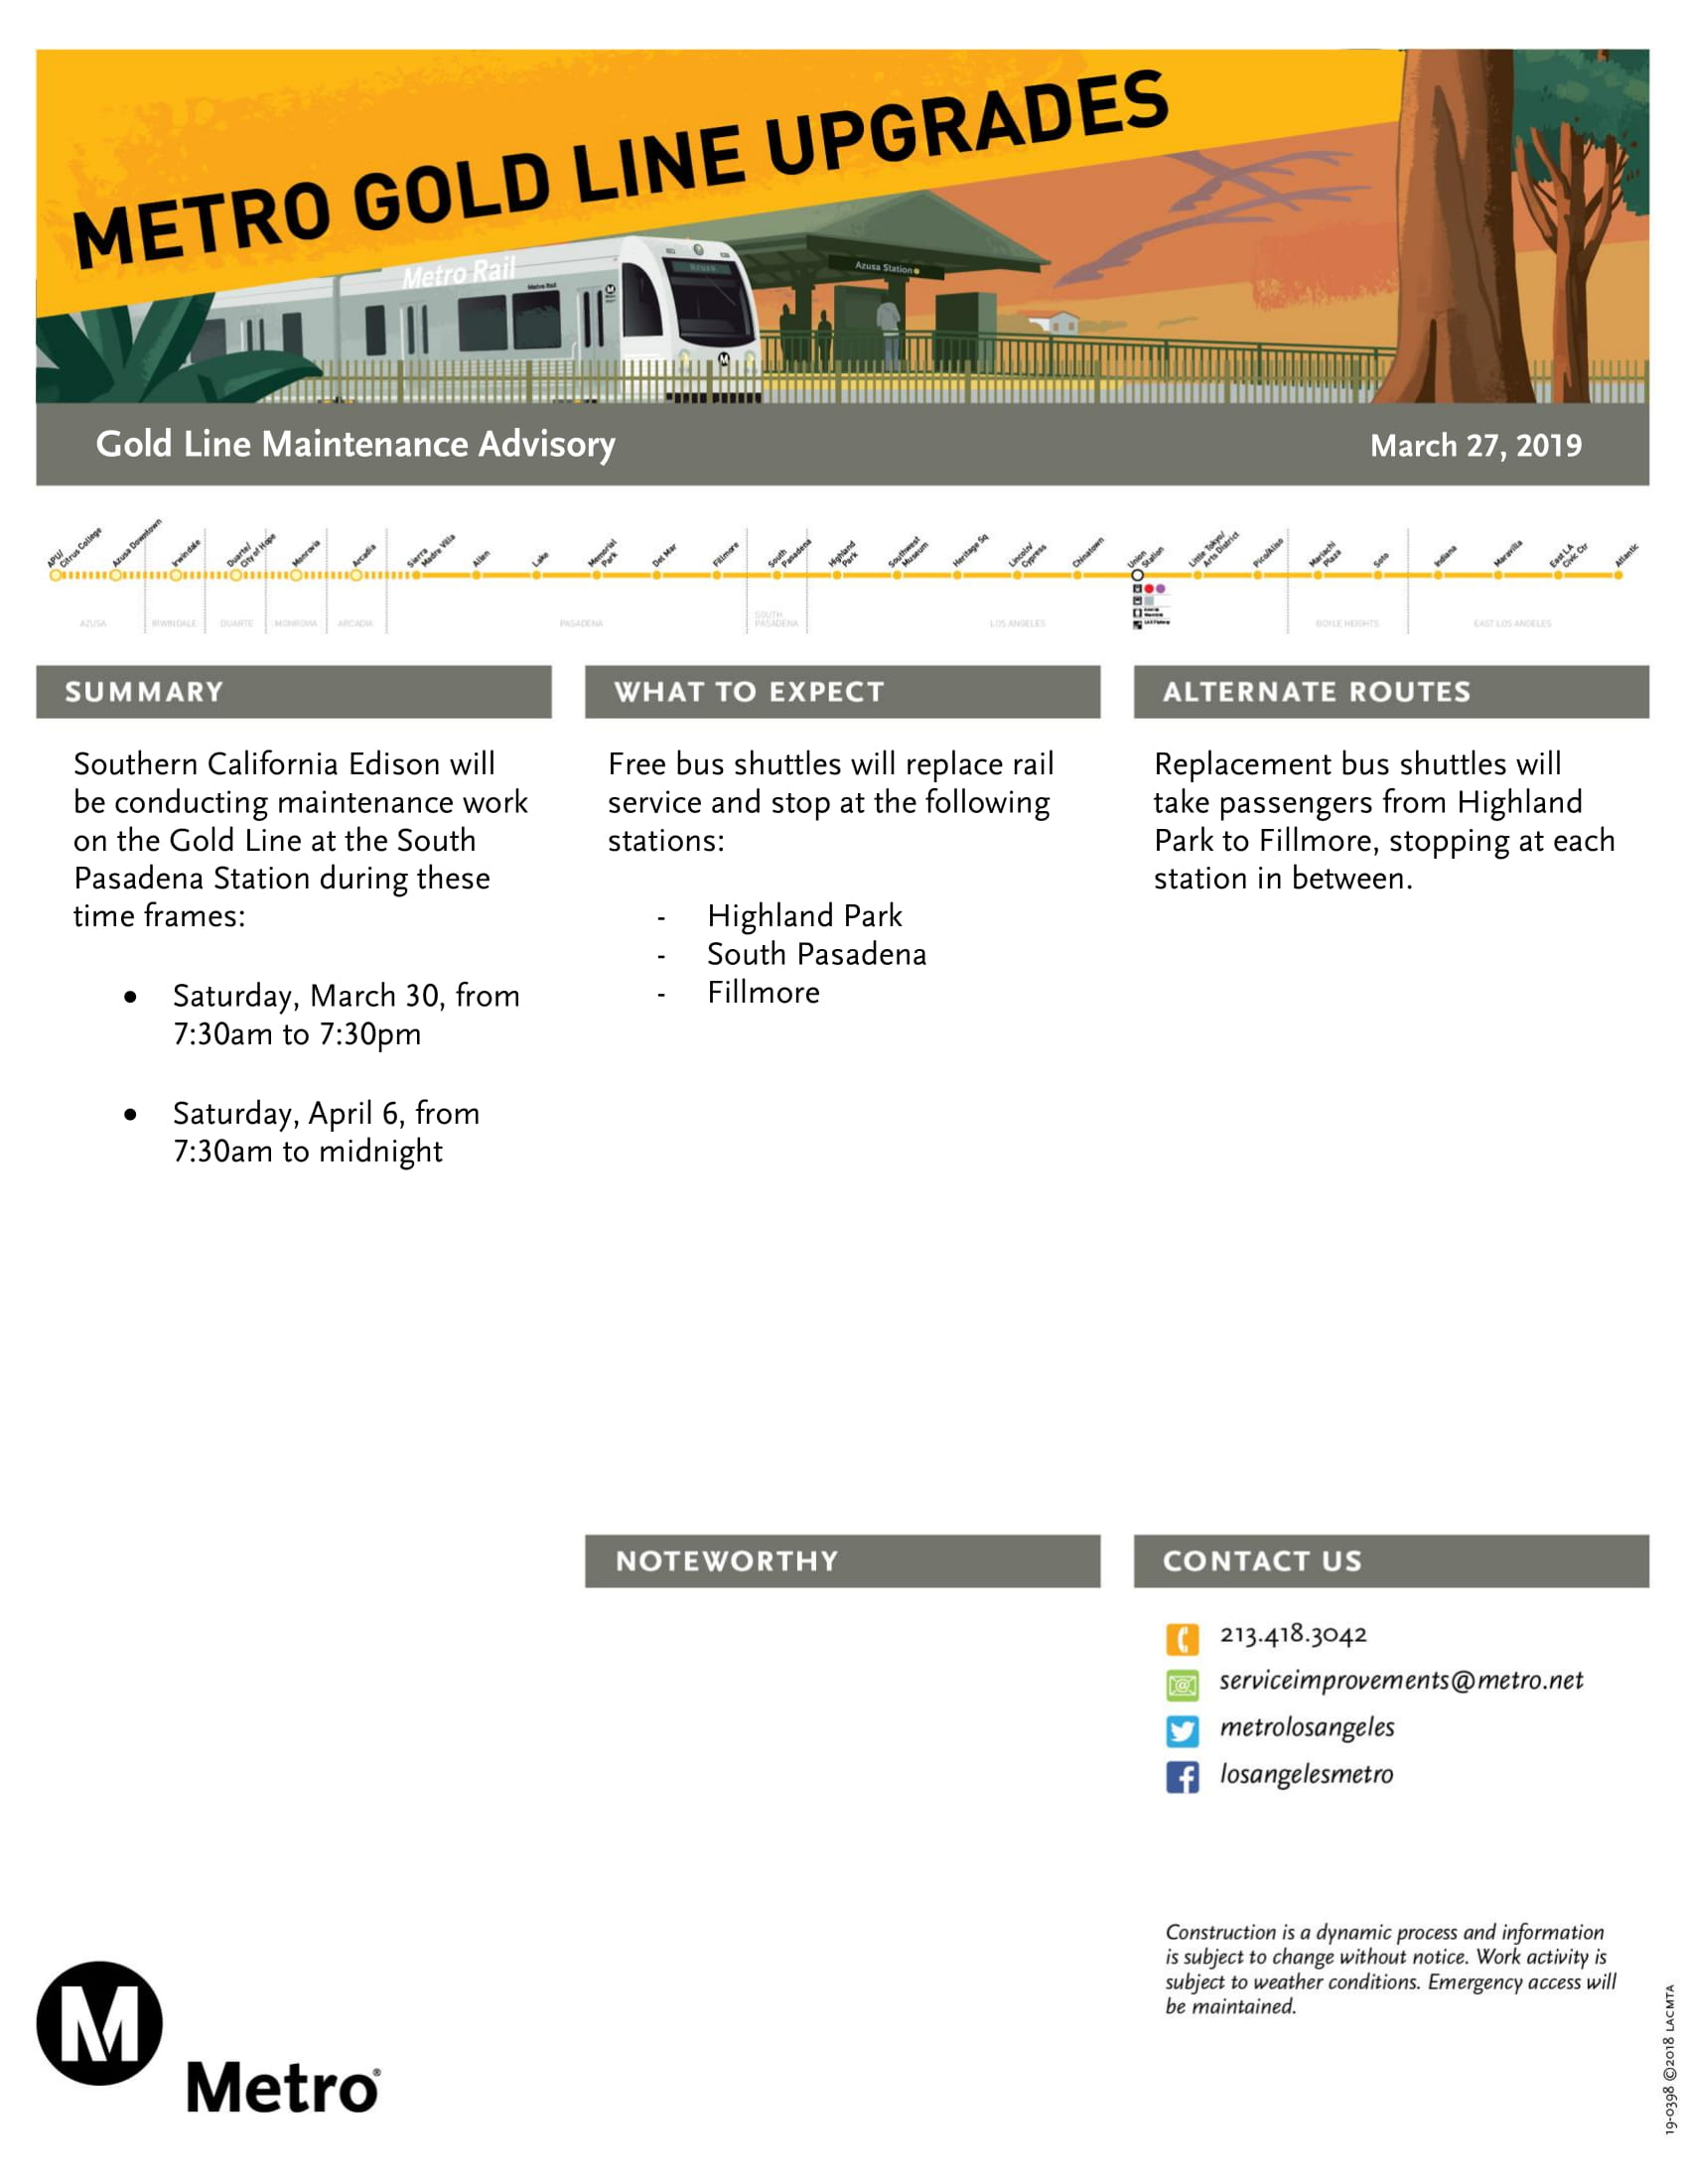 Service Advisory: Buses replace Gold Line service between